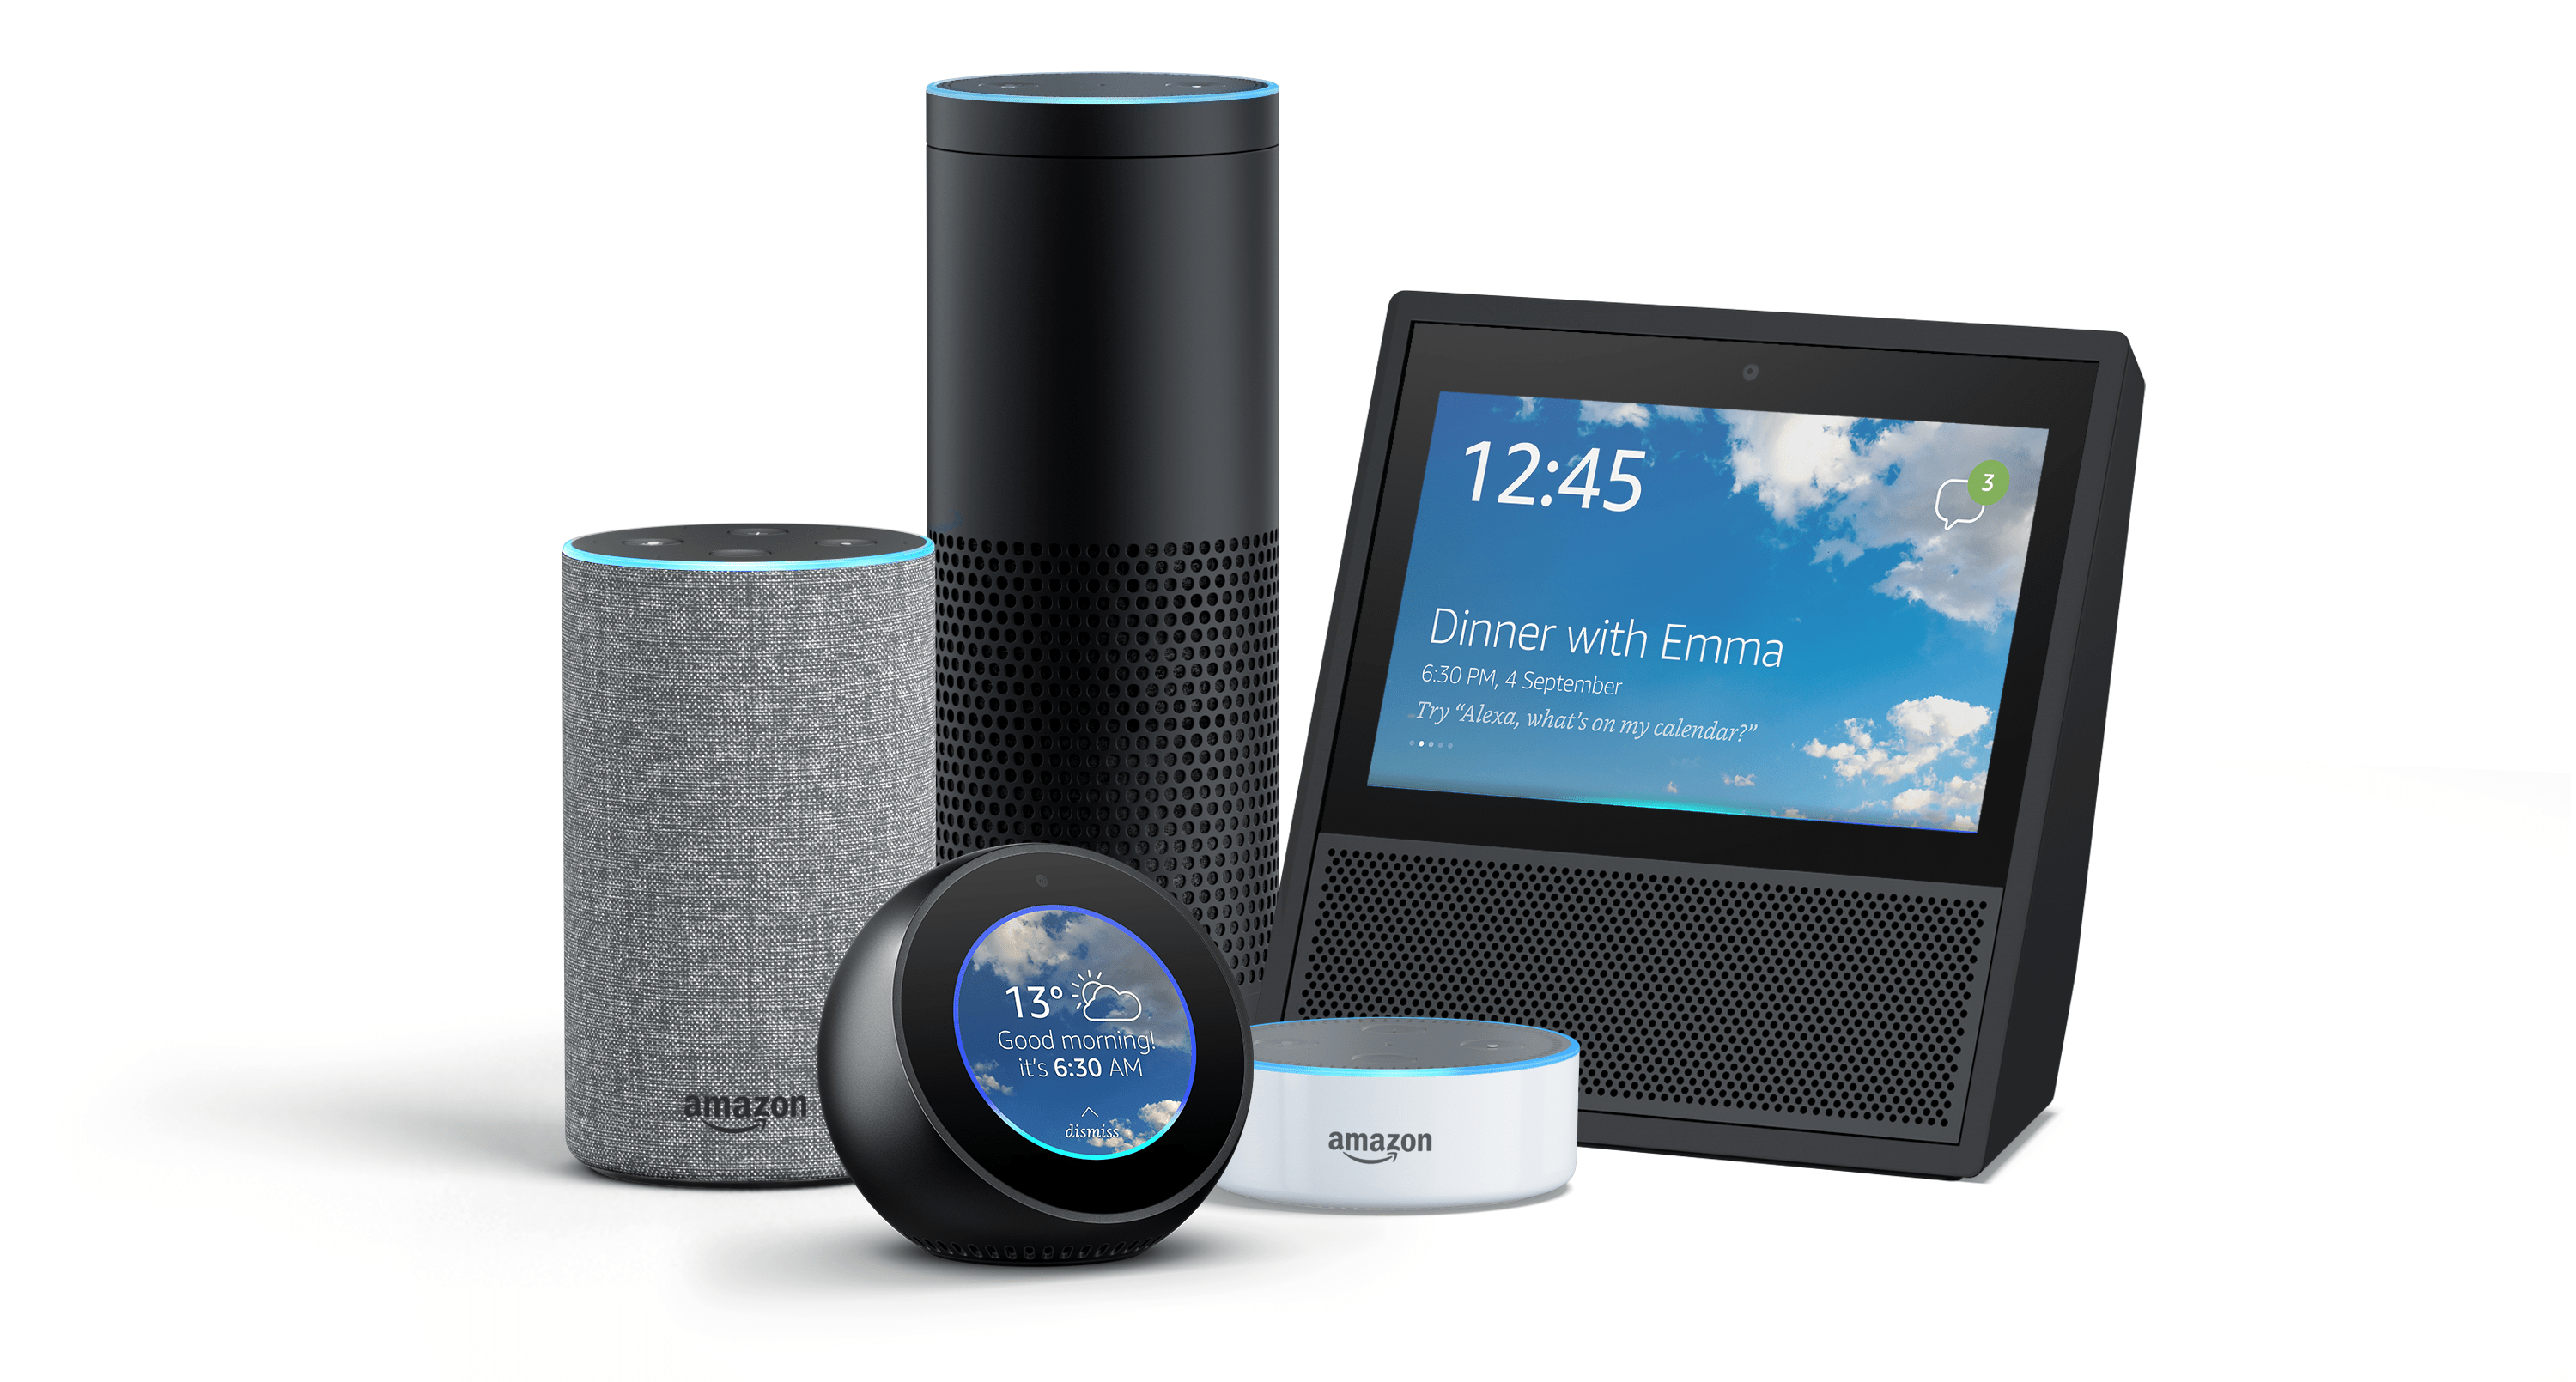 Amazon's Alexa comes to tablets, laptops, mirrors and